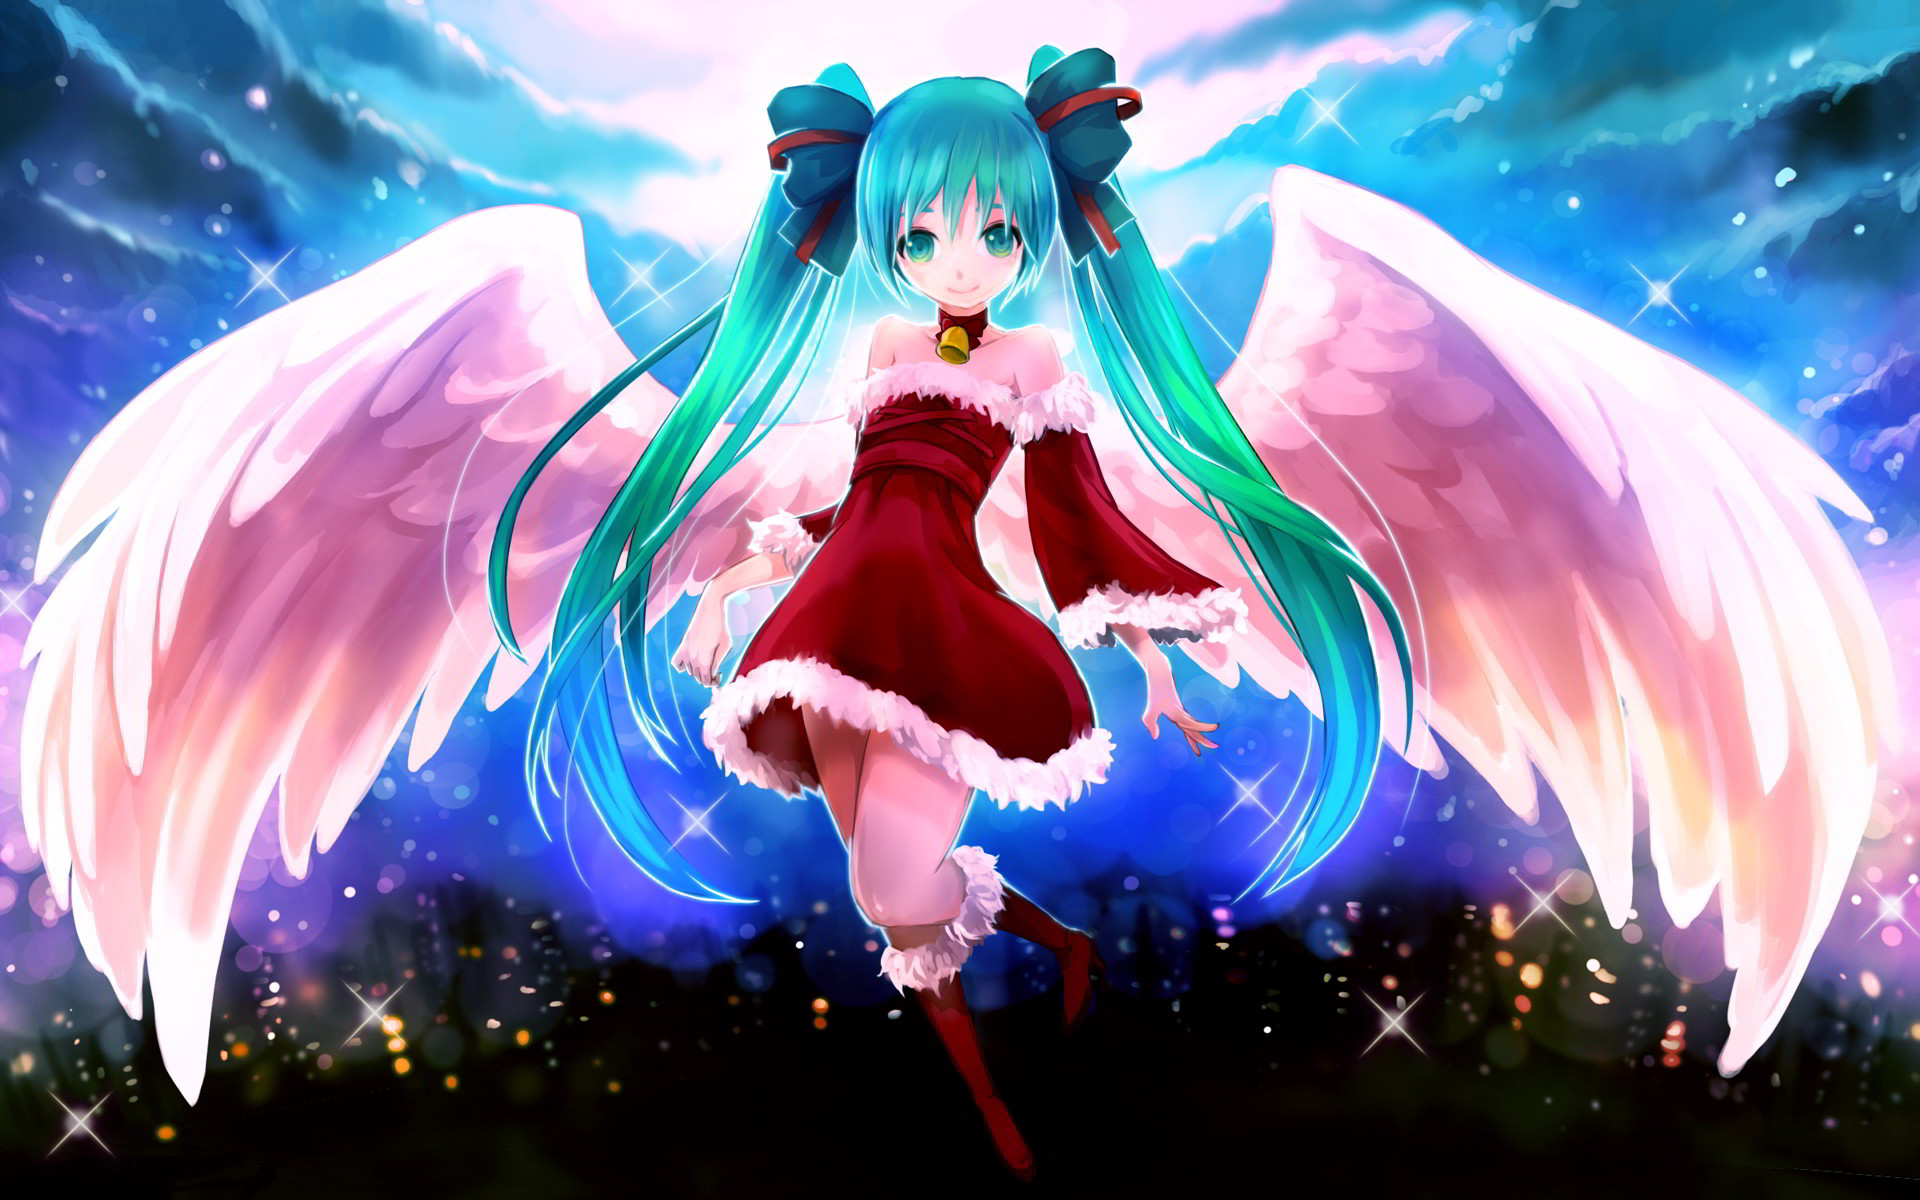 1920x1200 Angel HD Wallpapers Backgrounds Wallpaper 1024×768 Angel Picture Wallpapers  (45 Wallpapers) |